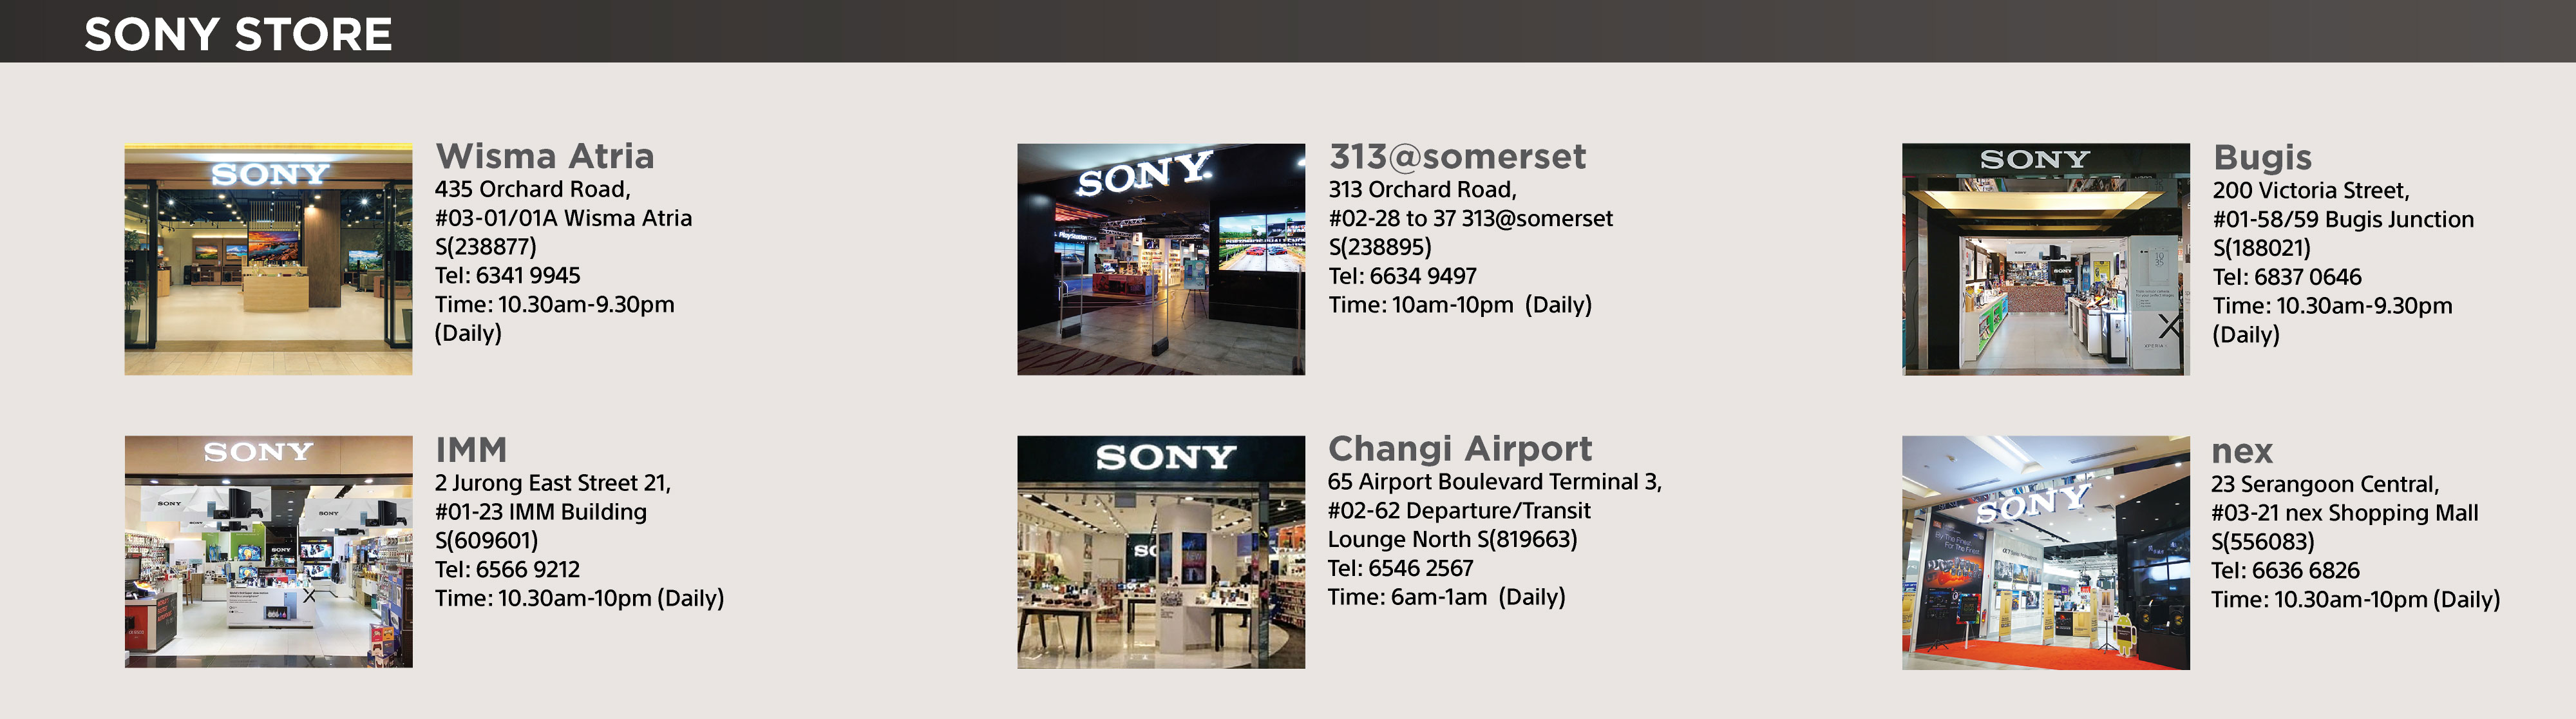 Sony Store locations, details and operating hours.